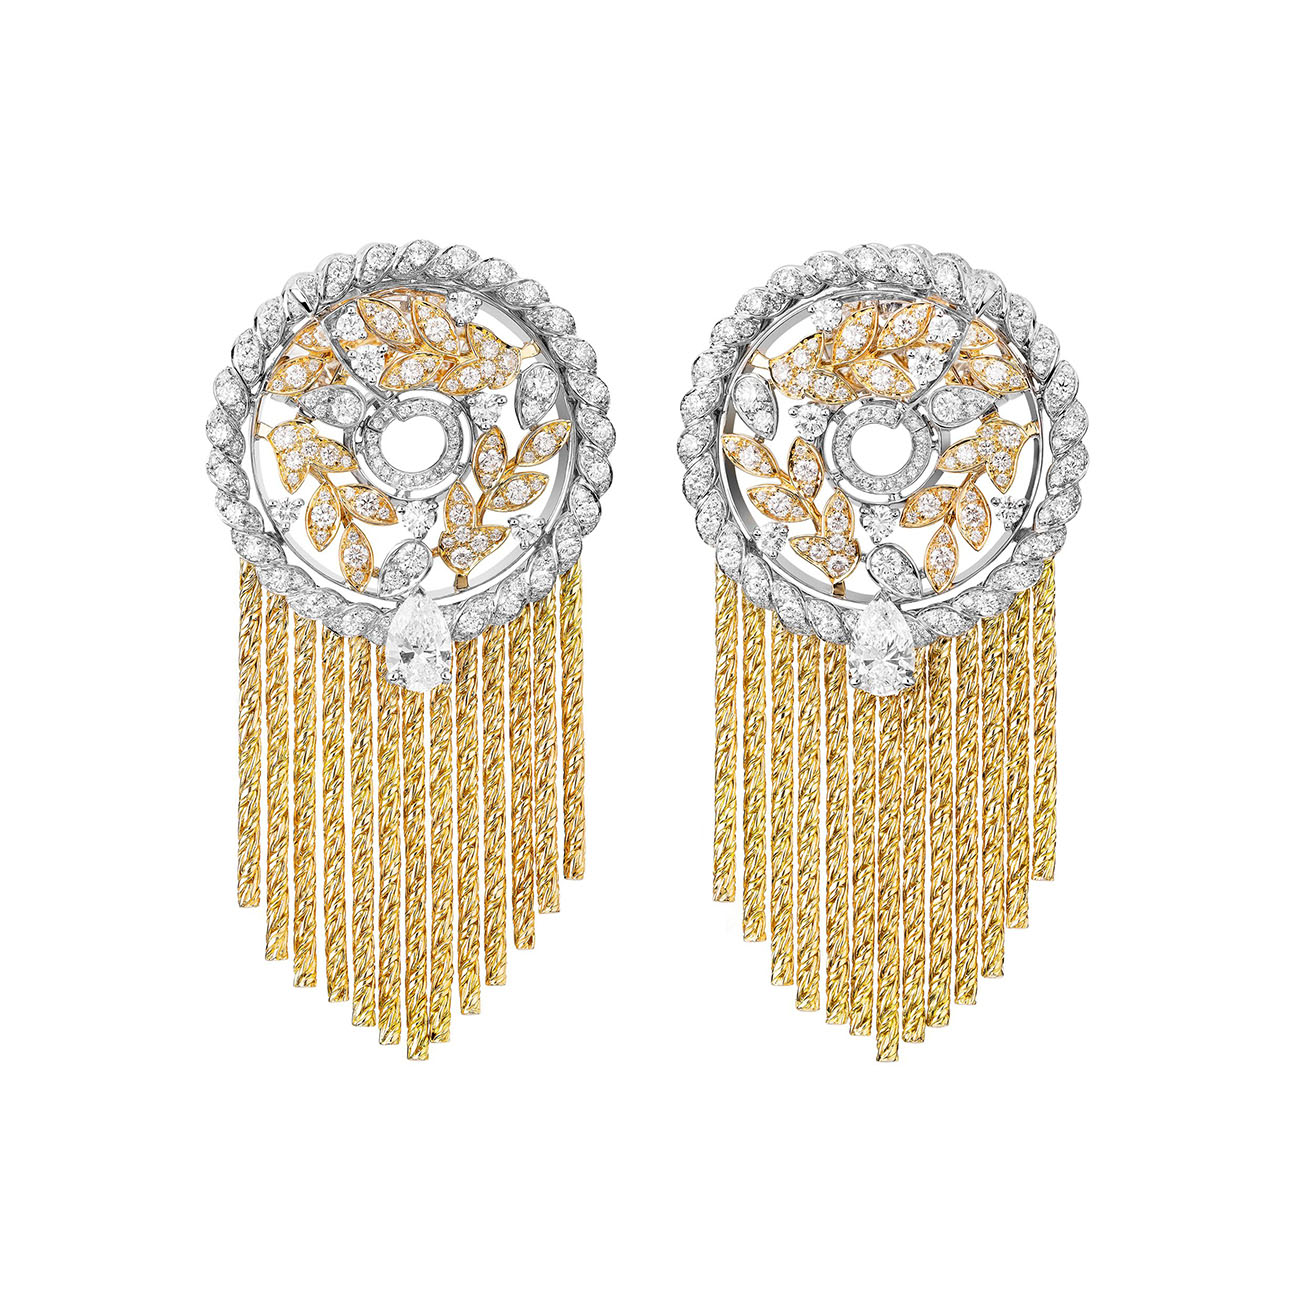 LE PARIS RUSSE DE CHANEL Blé Gabrielle earrings High Jewelry Collection